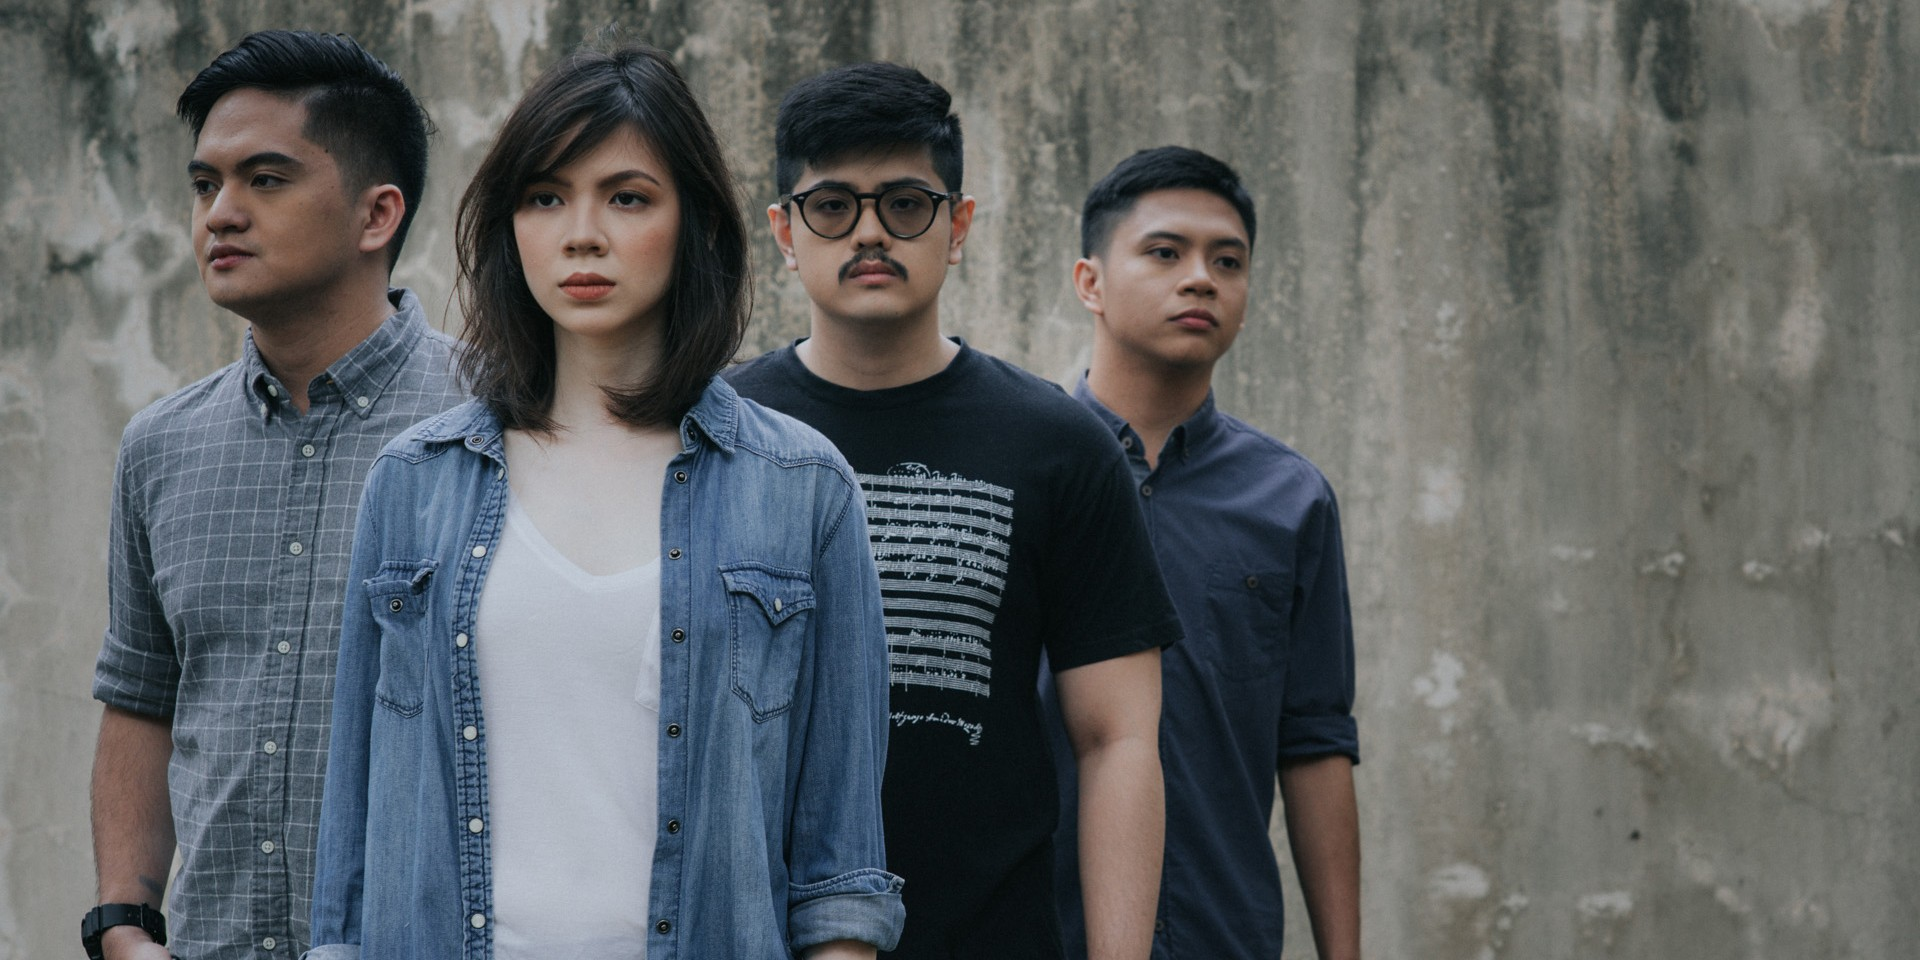 Fools and Foes to release self-titled debut album this June